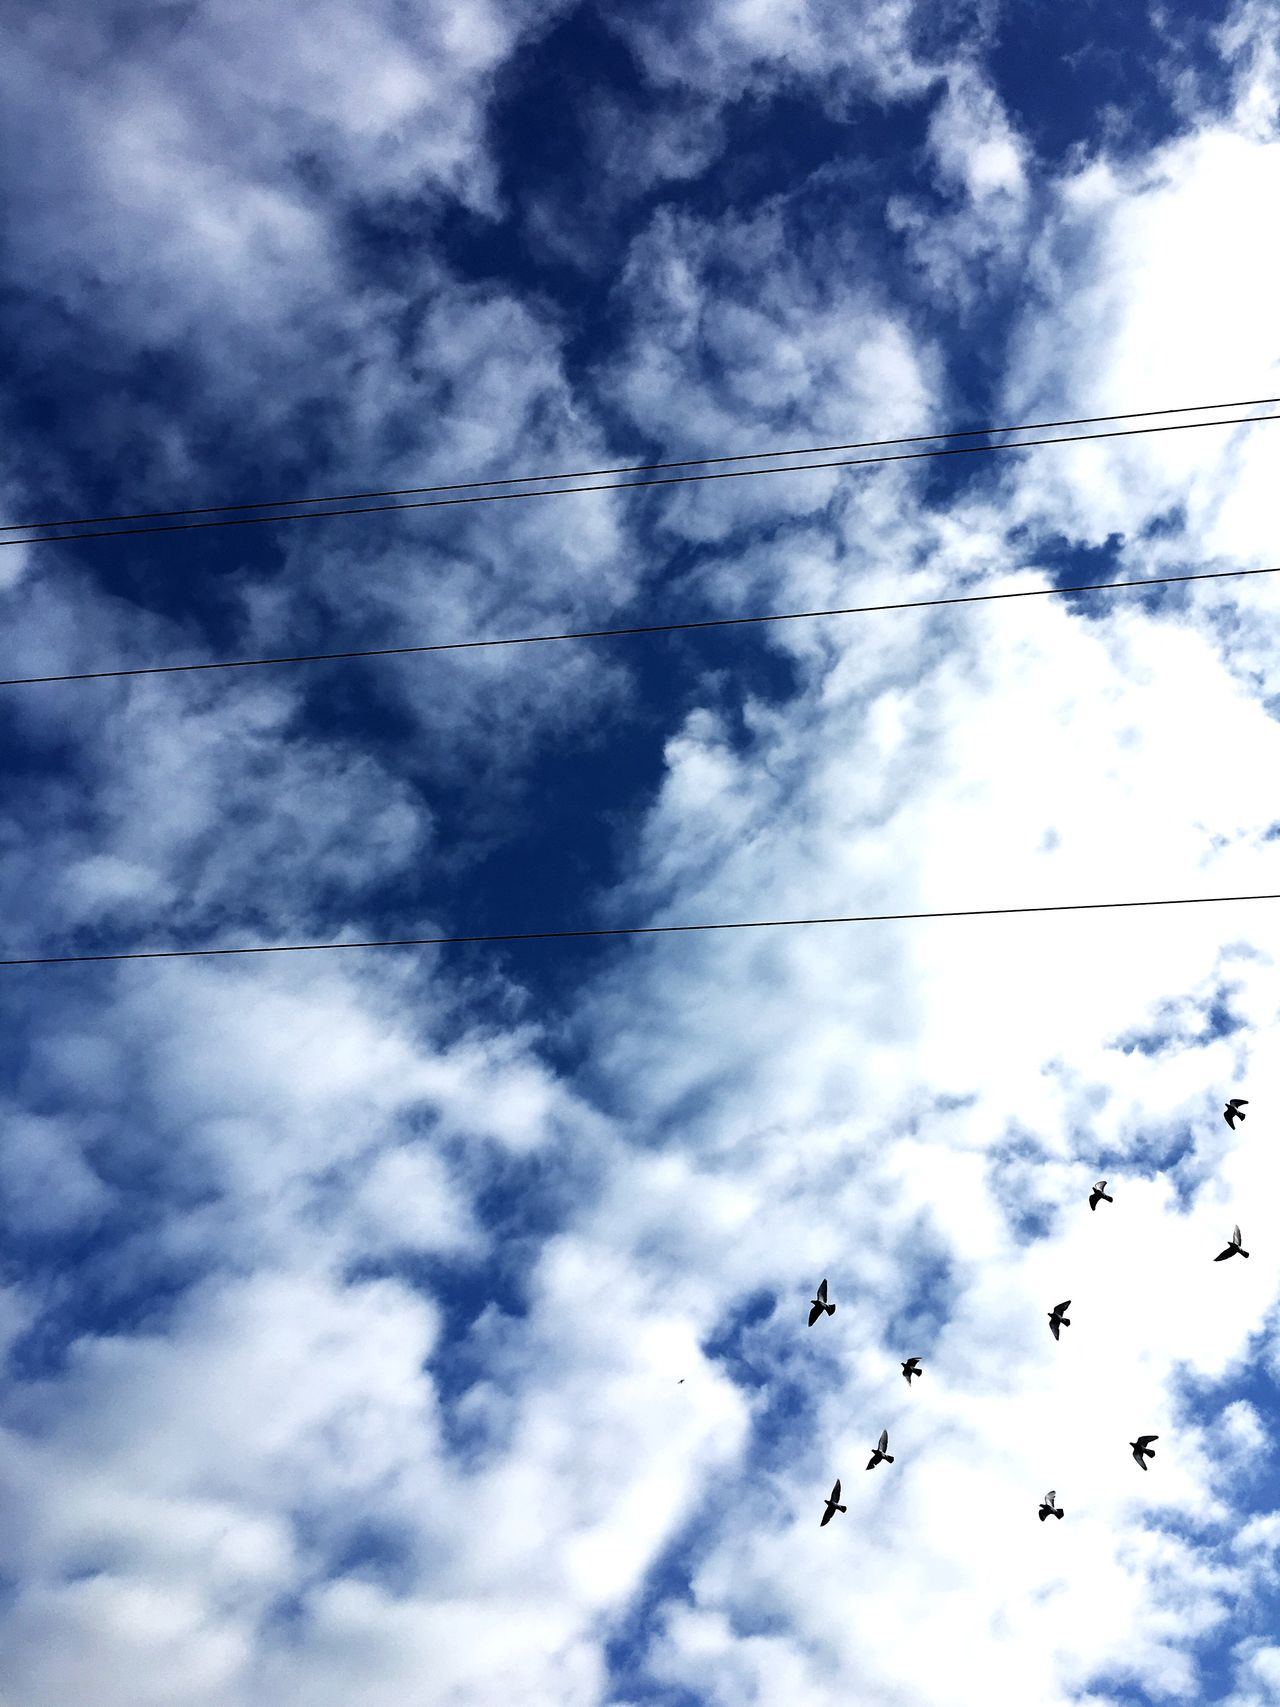 Racing Pigeons Flying under Blue Clouded Skies